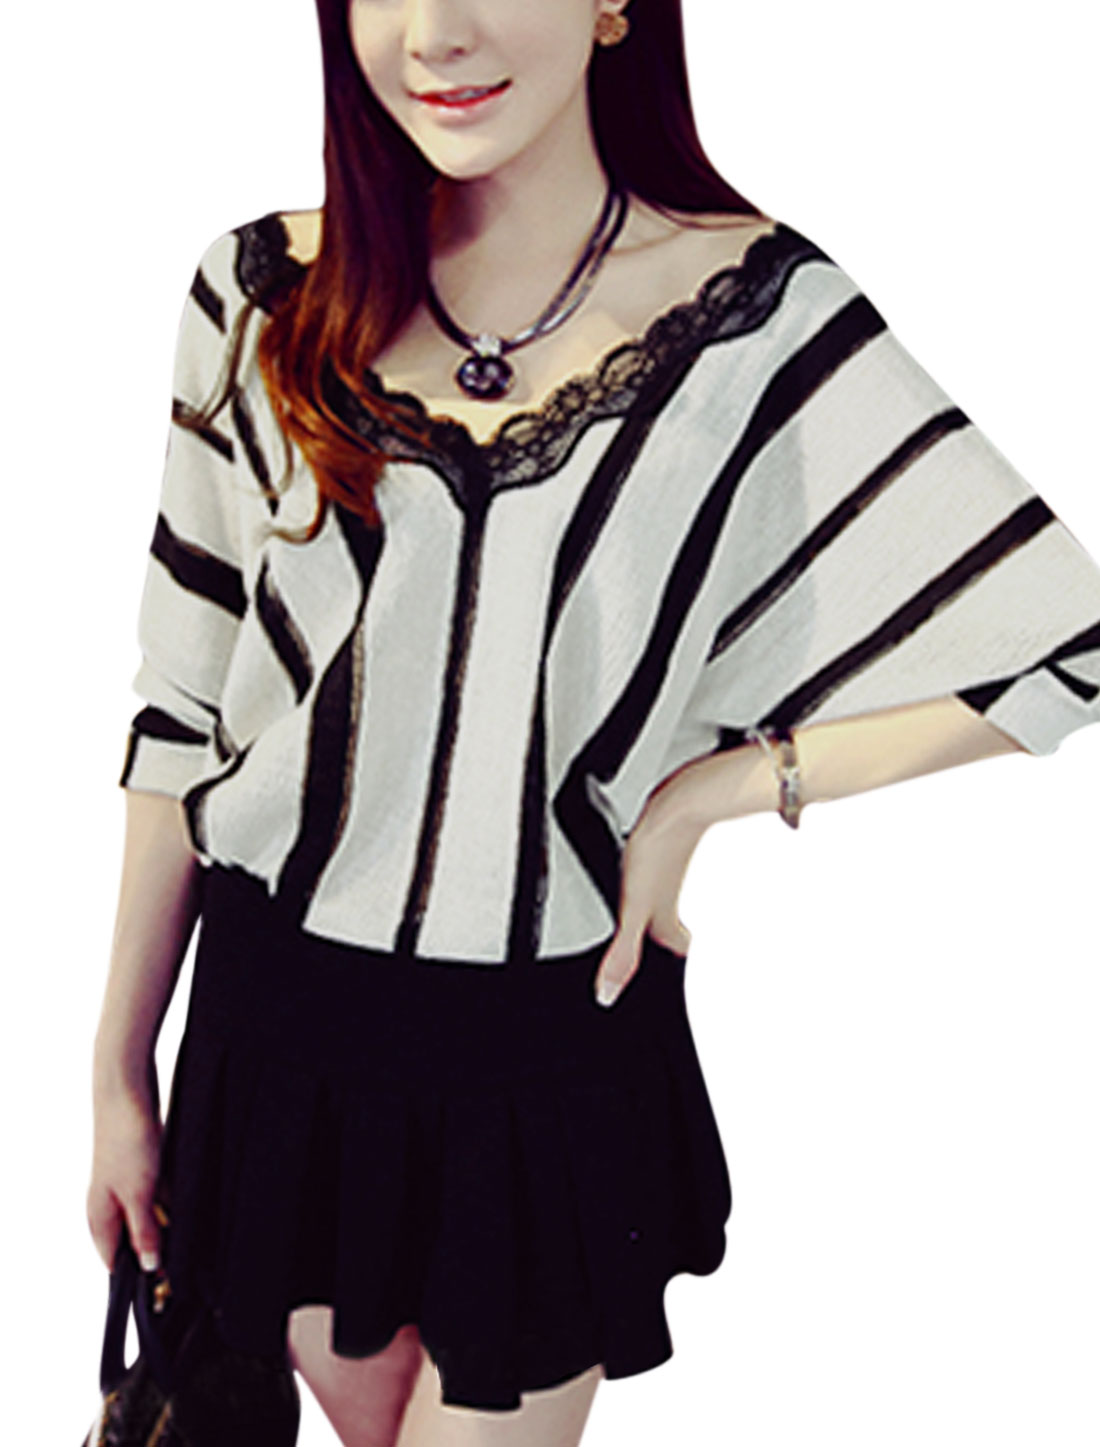 Woman Vertical Stripes Lace Trim Batwing Sleeves Panel Top Black White XS